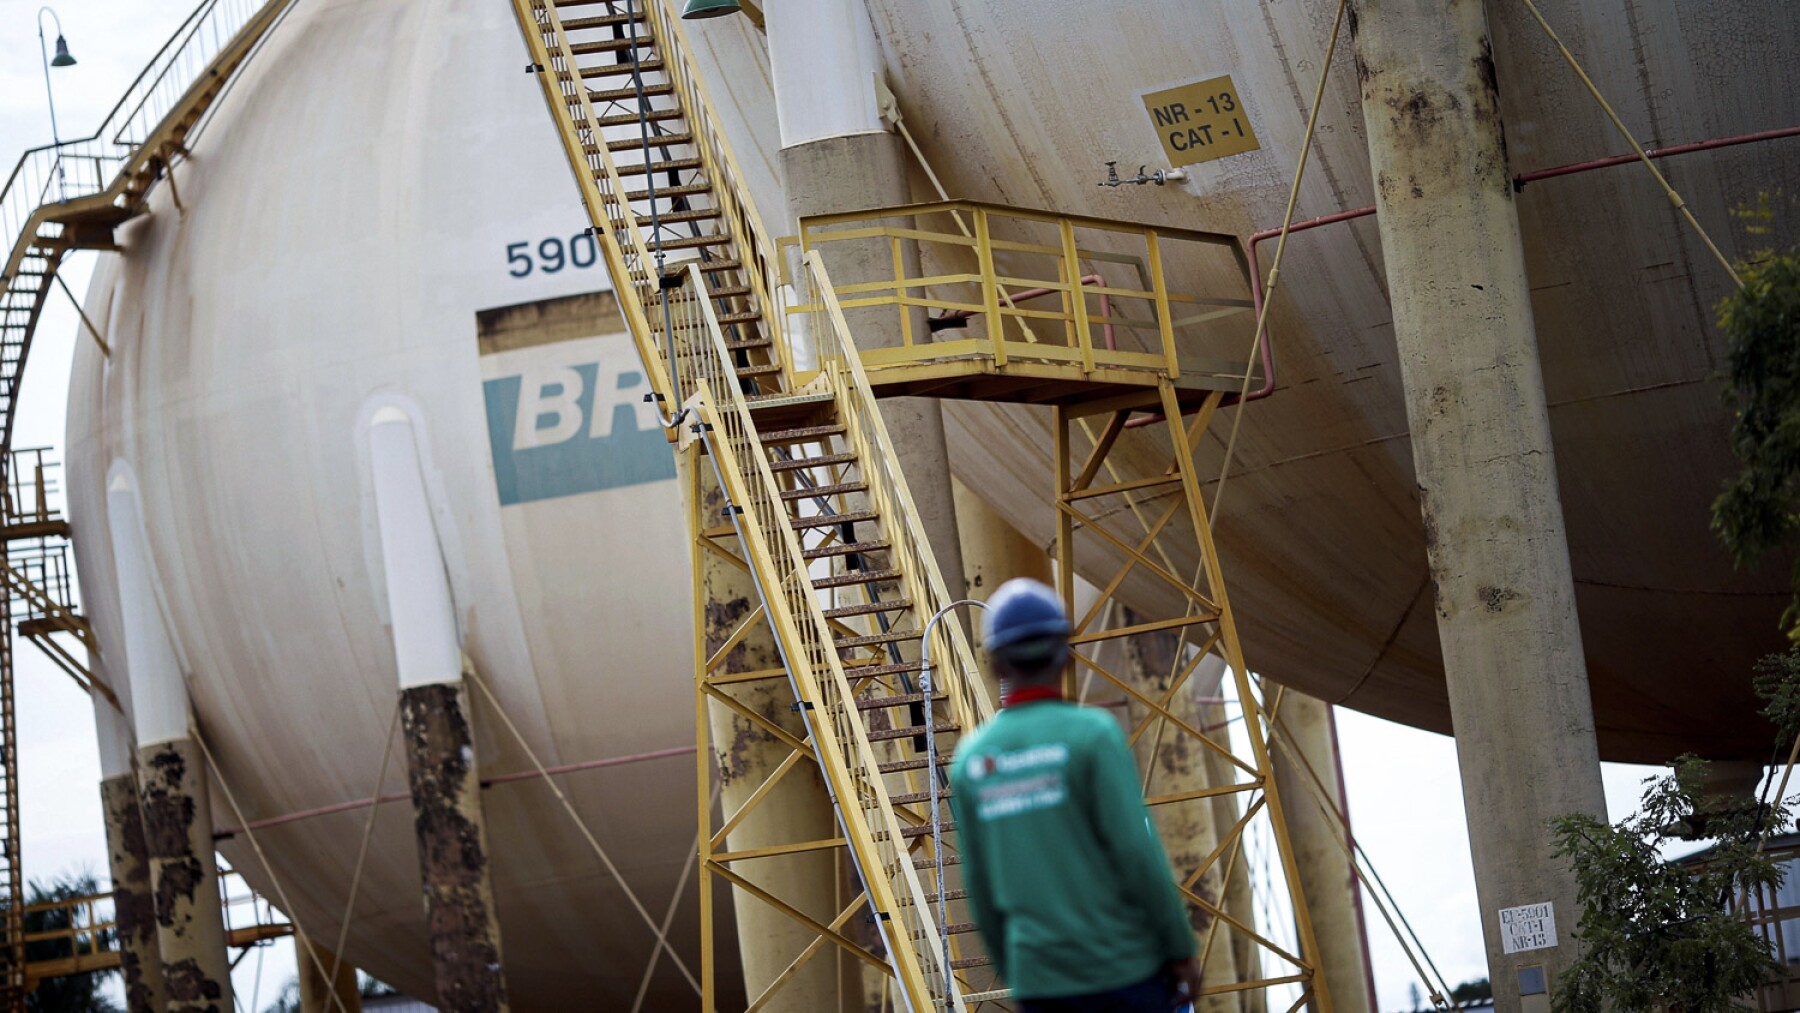 A worker stands near a tank of Brazil's state-run Petrobras oil company in Brasilia